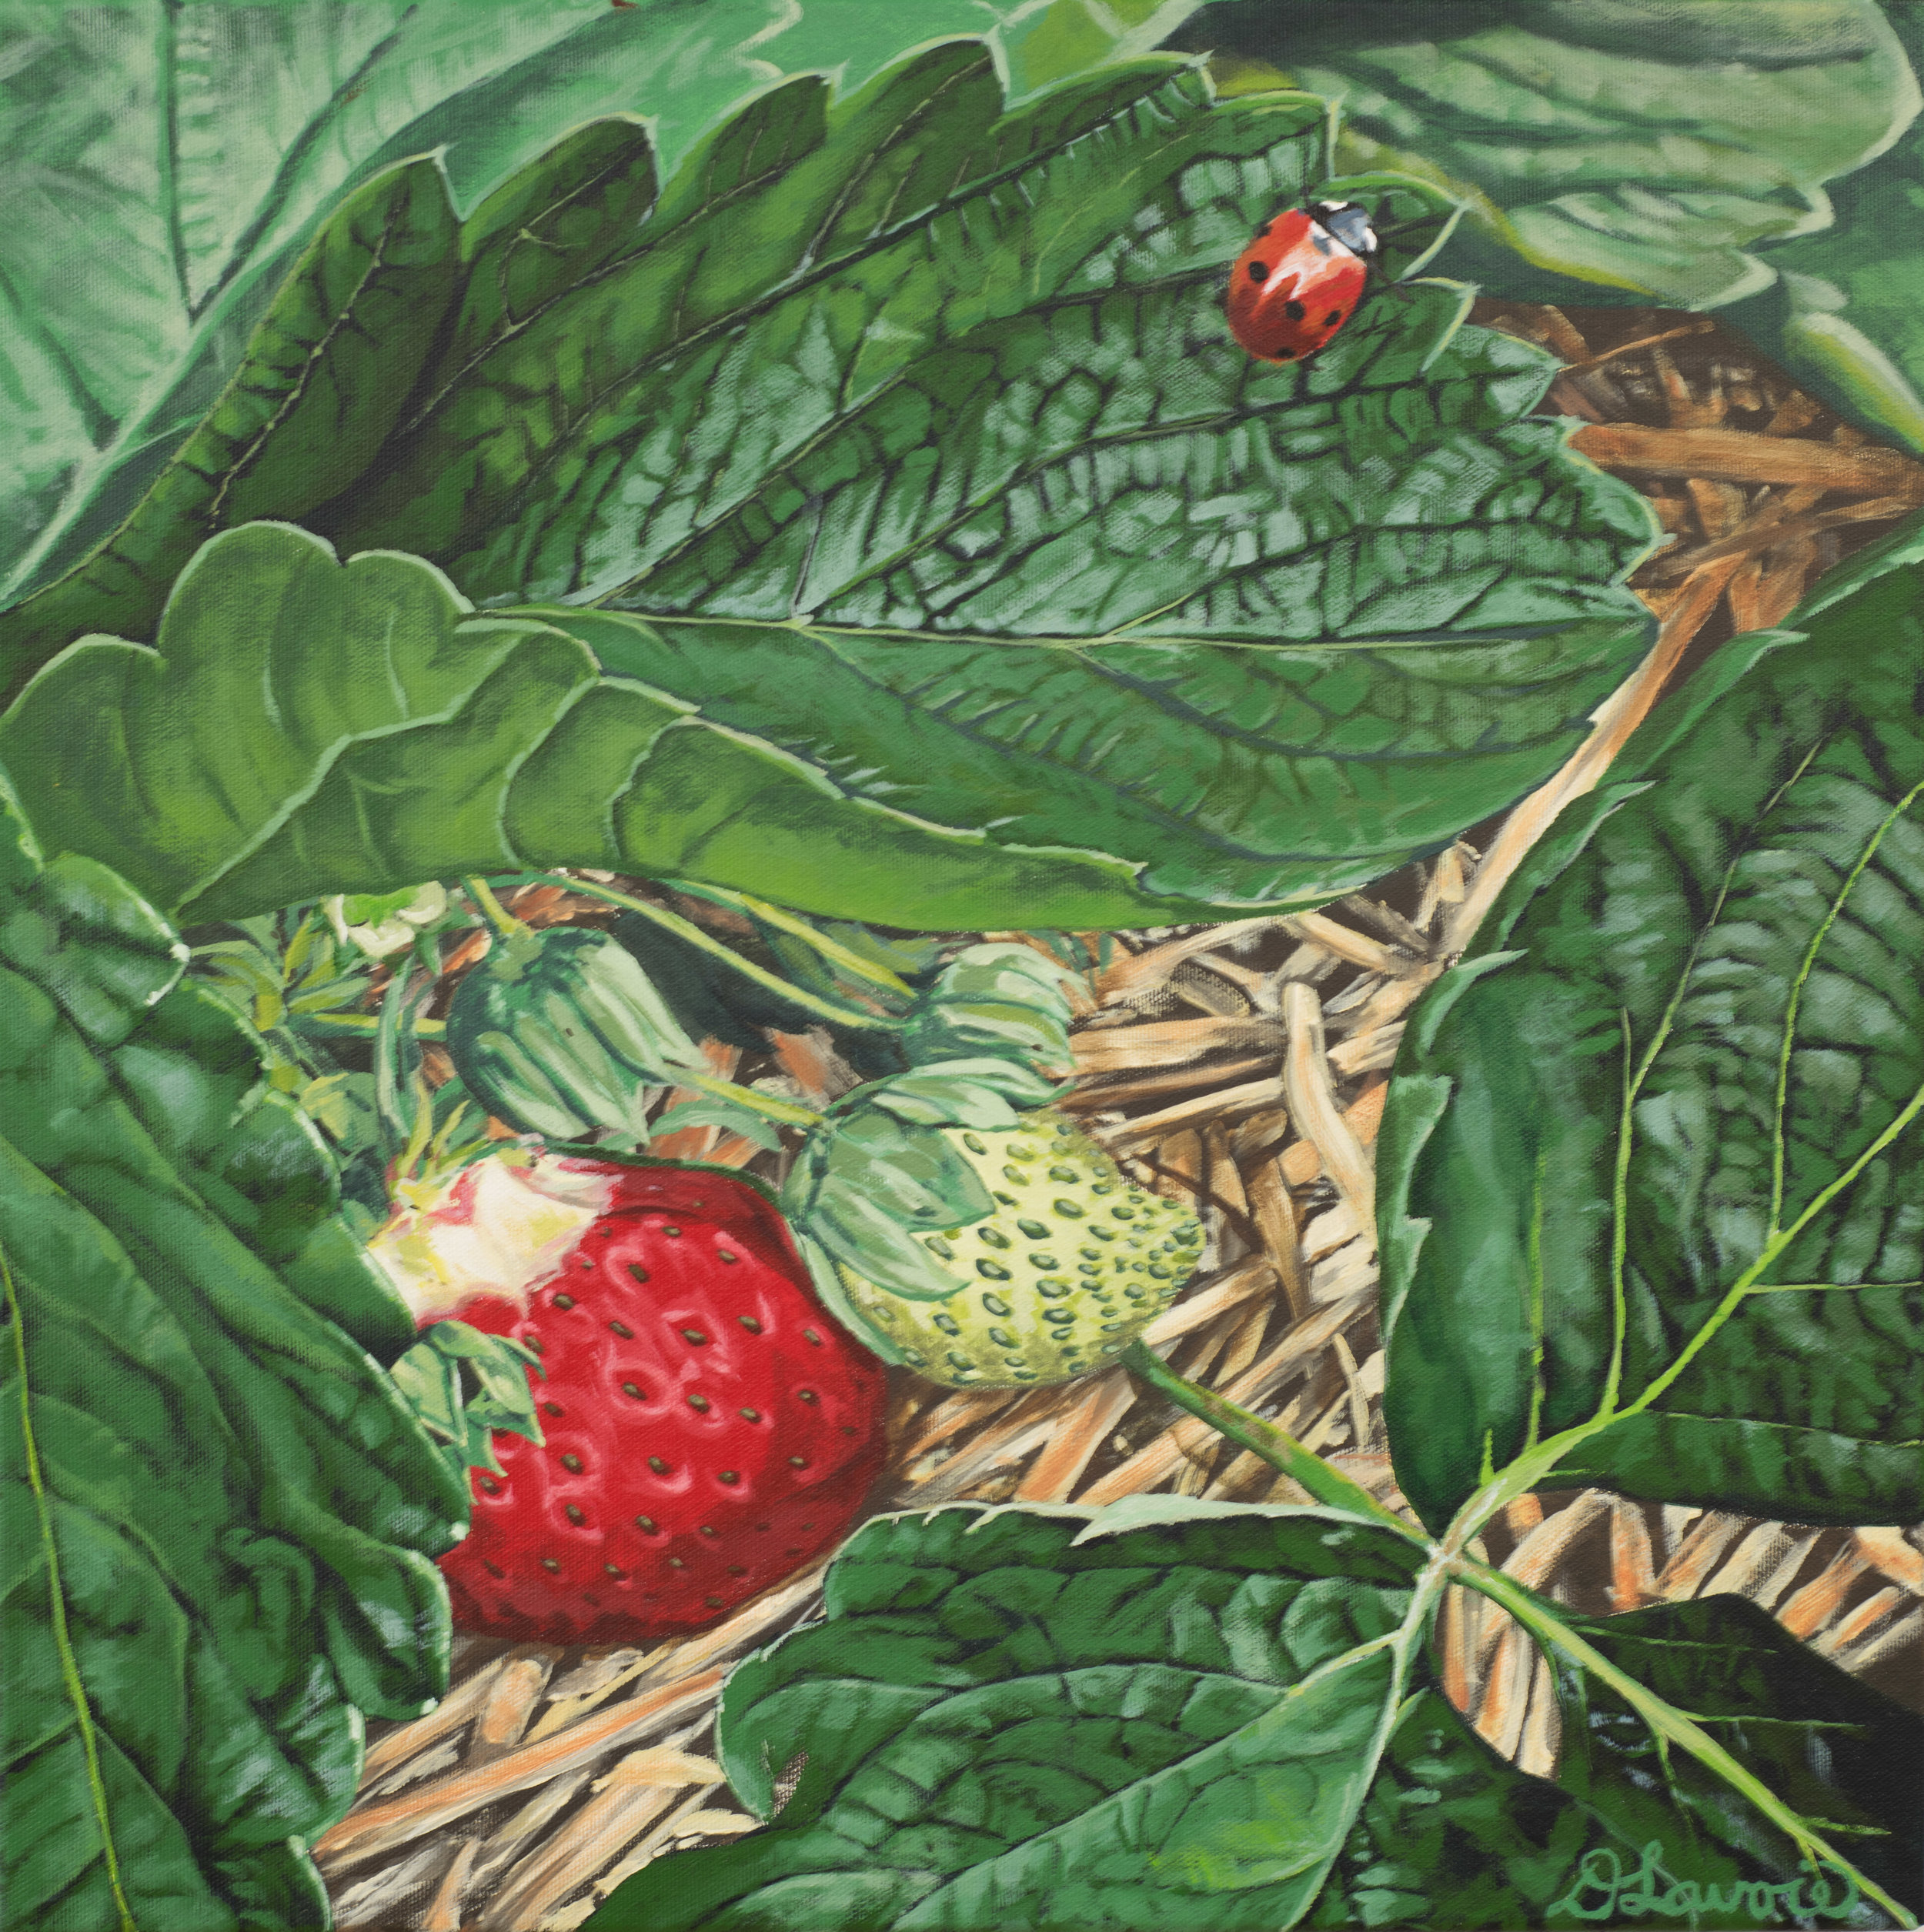 """The Garden Visitor          Acrylic on Canvas - 18"""" x 18""""   Both the original and limited edition prints are available.   Ladybugs and lush red strawberries in my garden make me smile. And that was one yummy berry!"""